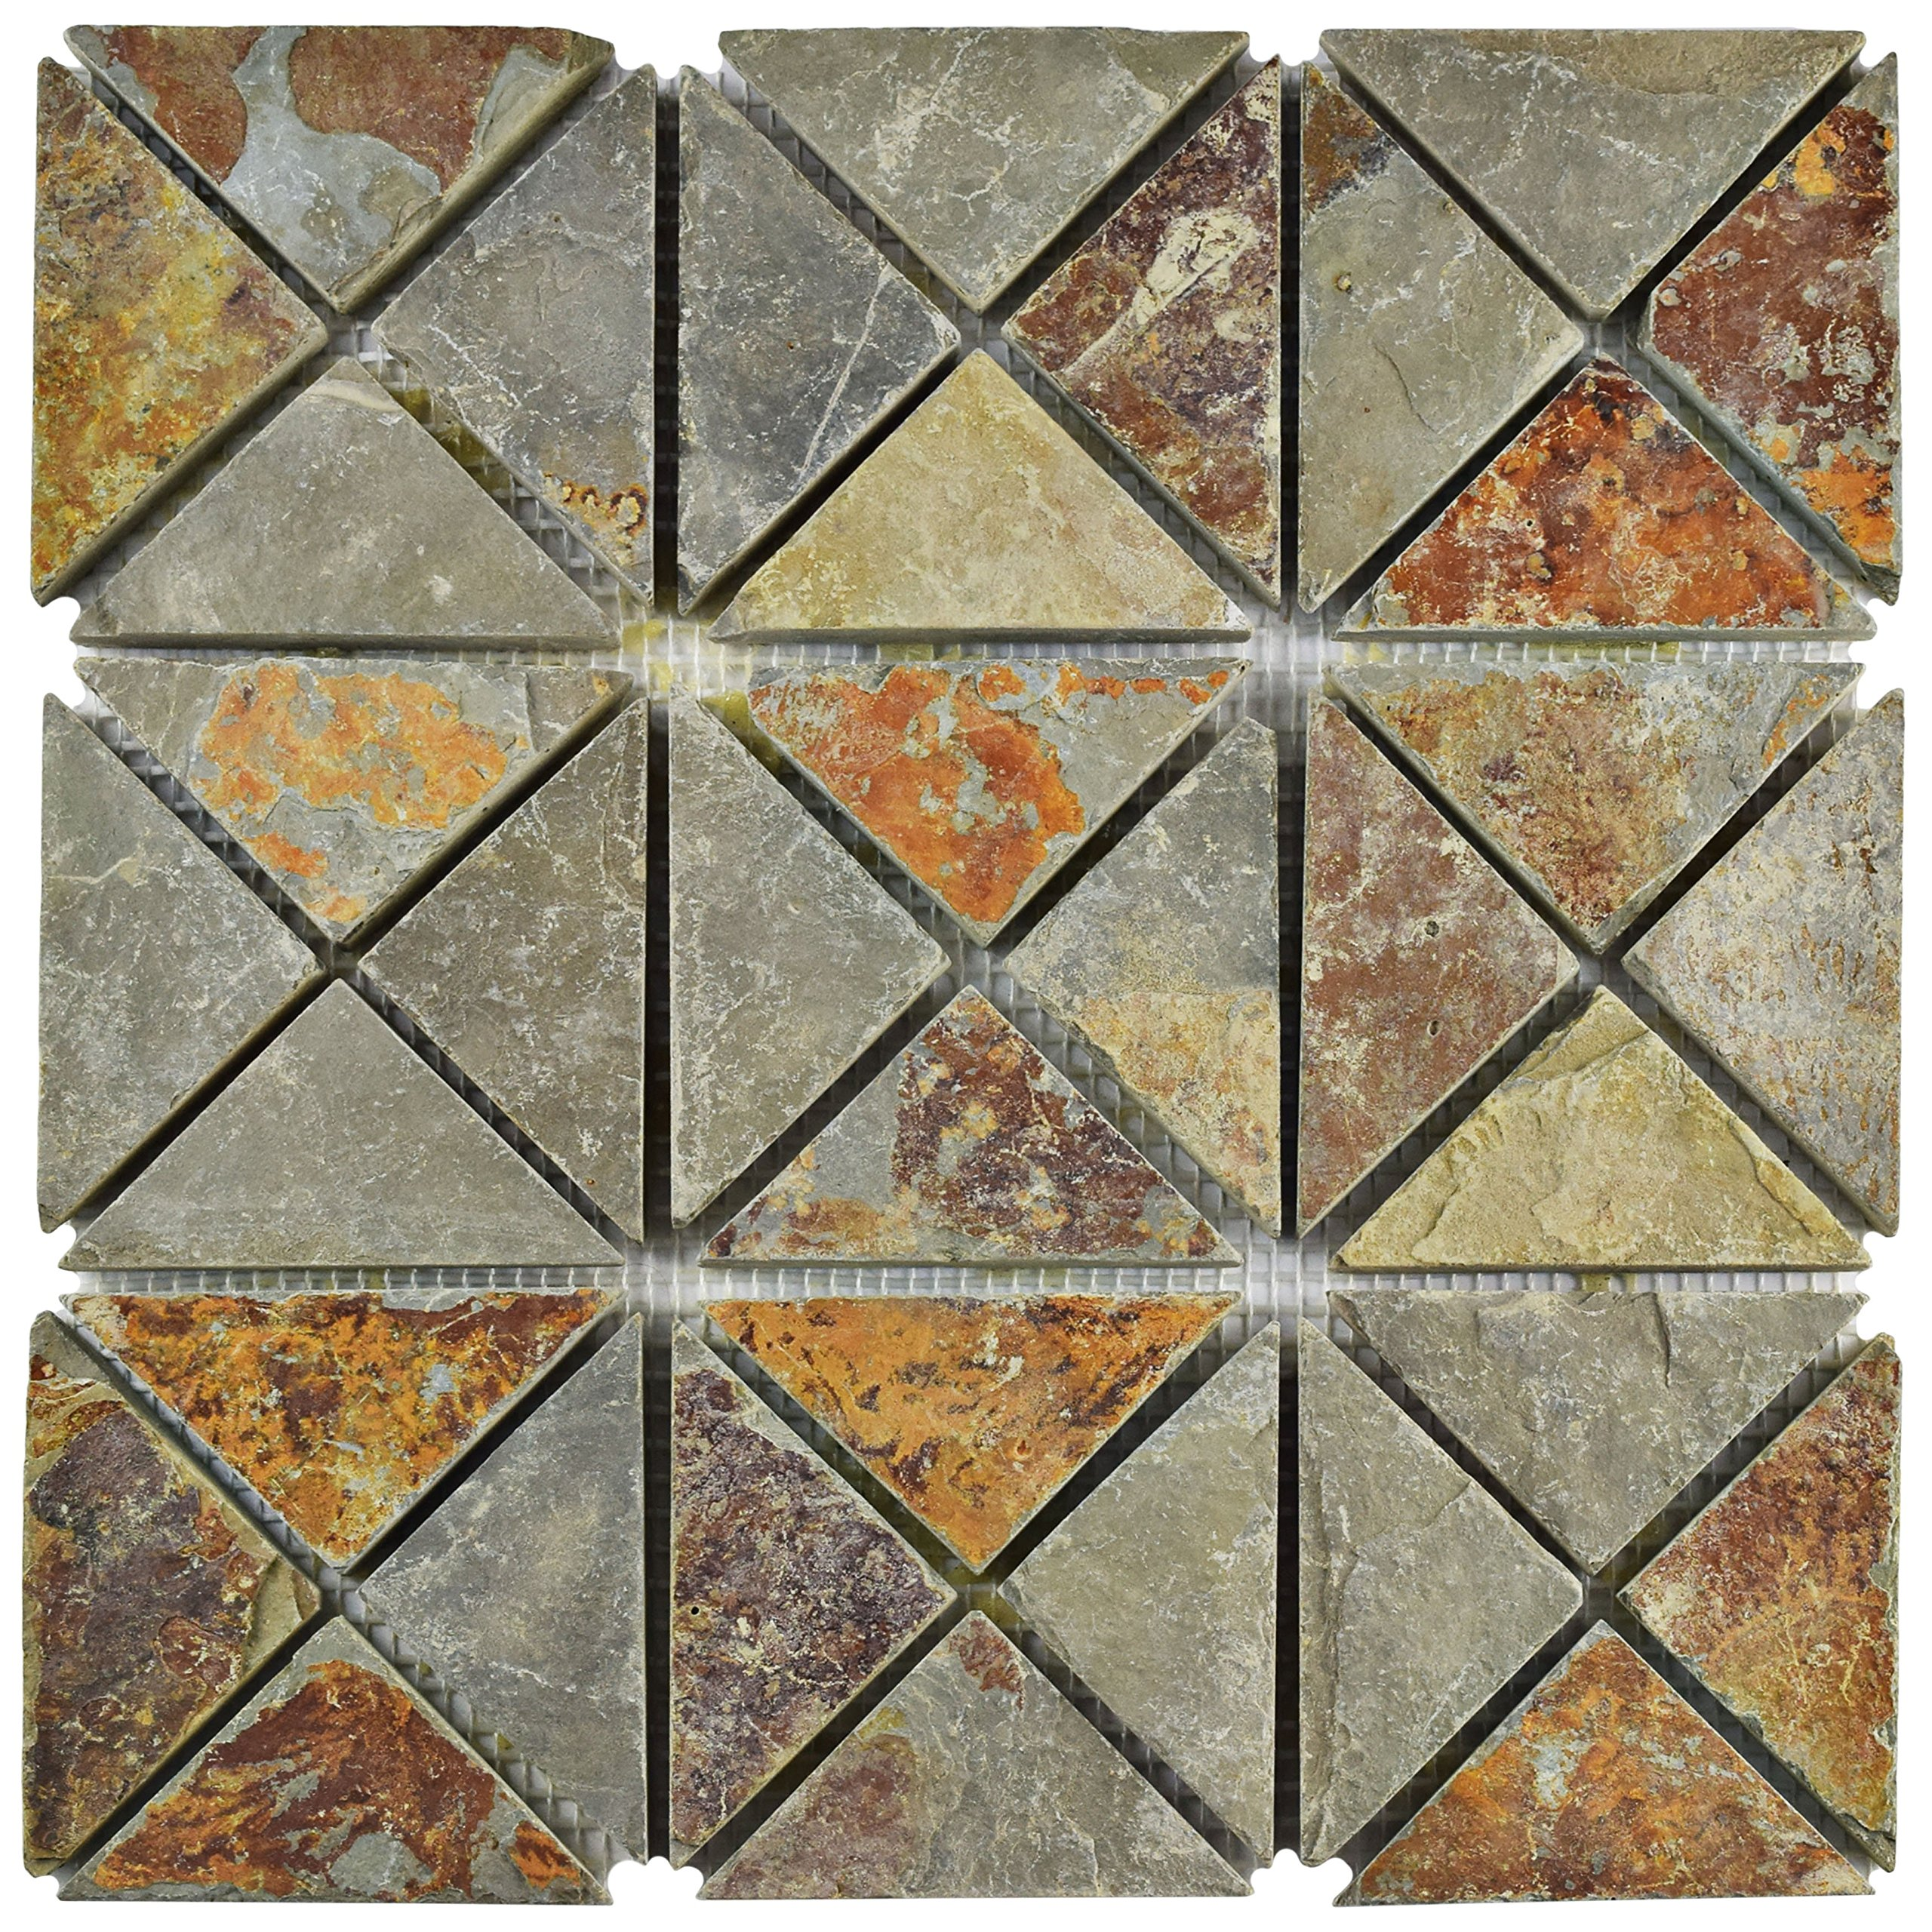 SomerTile SCRTSSS Cliff TriSquare Sunset Slate Natural Stone Mosaic Floor and Wall Tile, 12'' x 12'', Grey/Brown/Red/Orange/Green